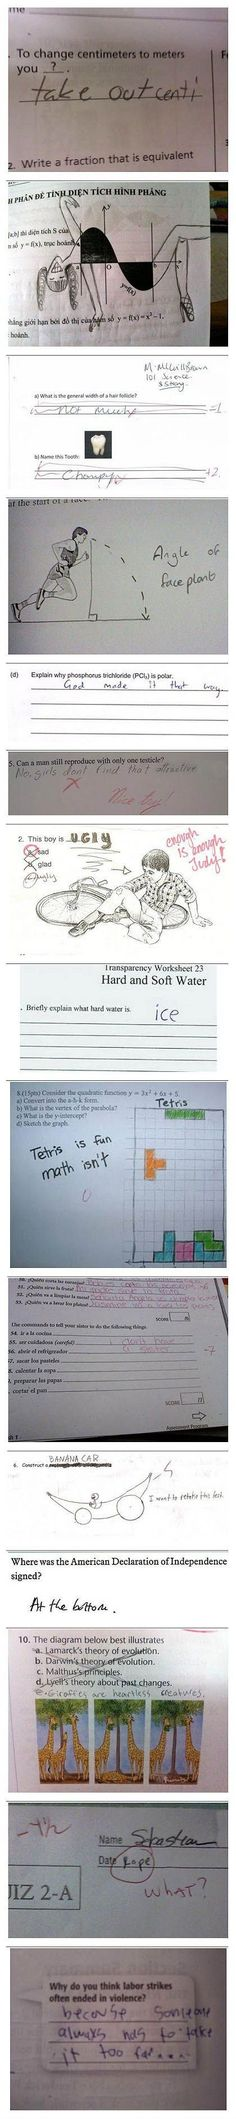 How to fail a test. lmfao!!